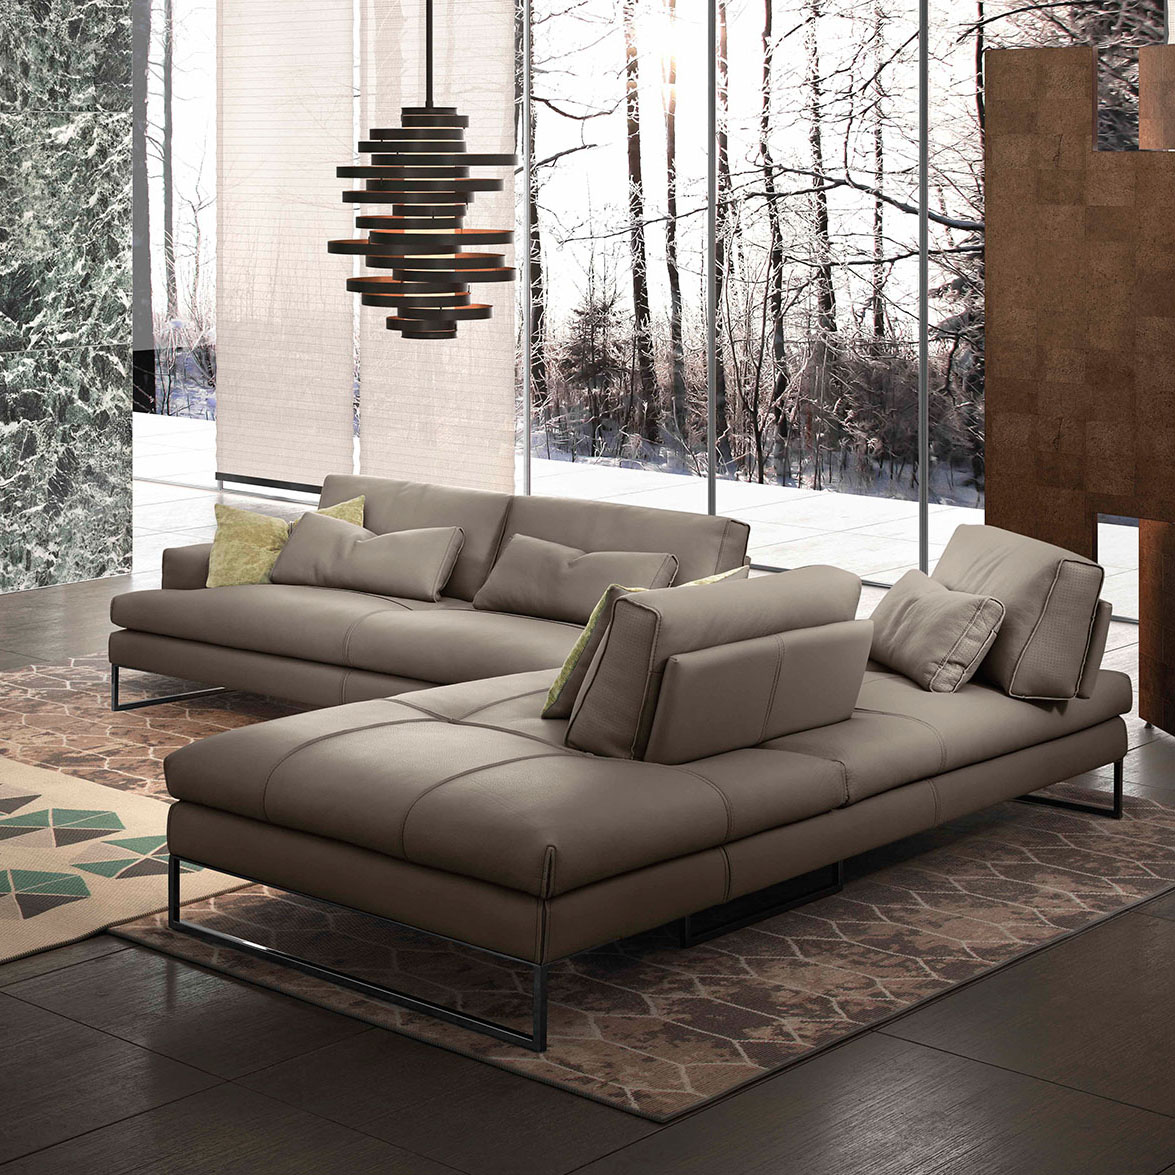 leather sofa with fabric seat cushions cotton covers uk sunset - design depot furniture miami showroom